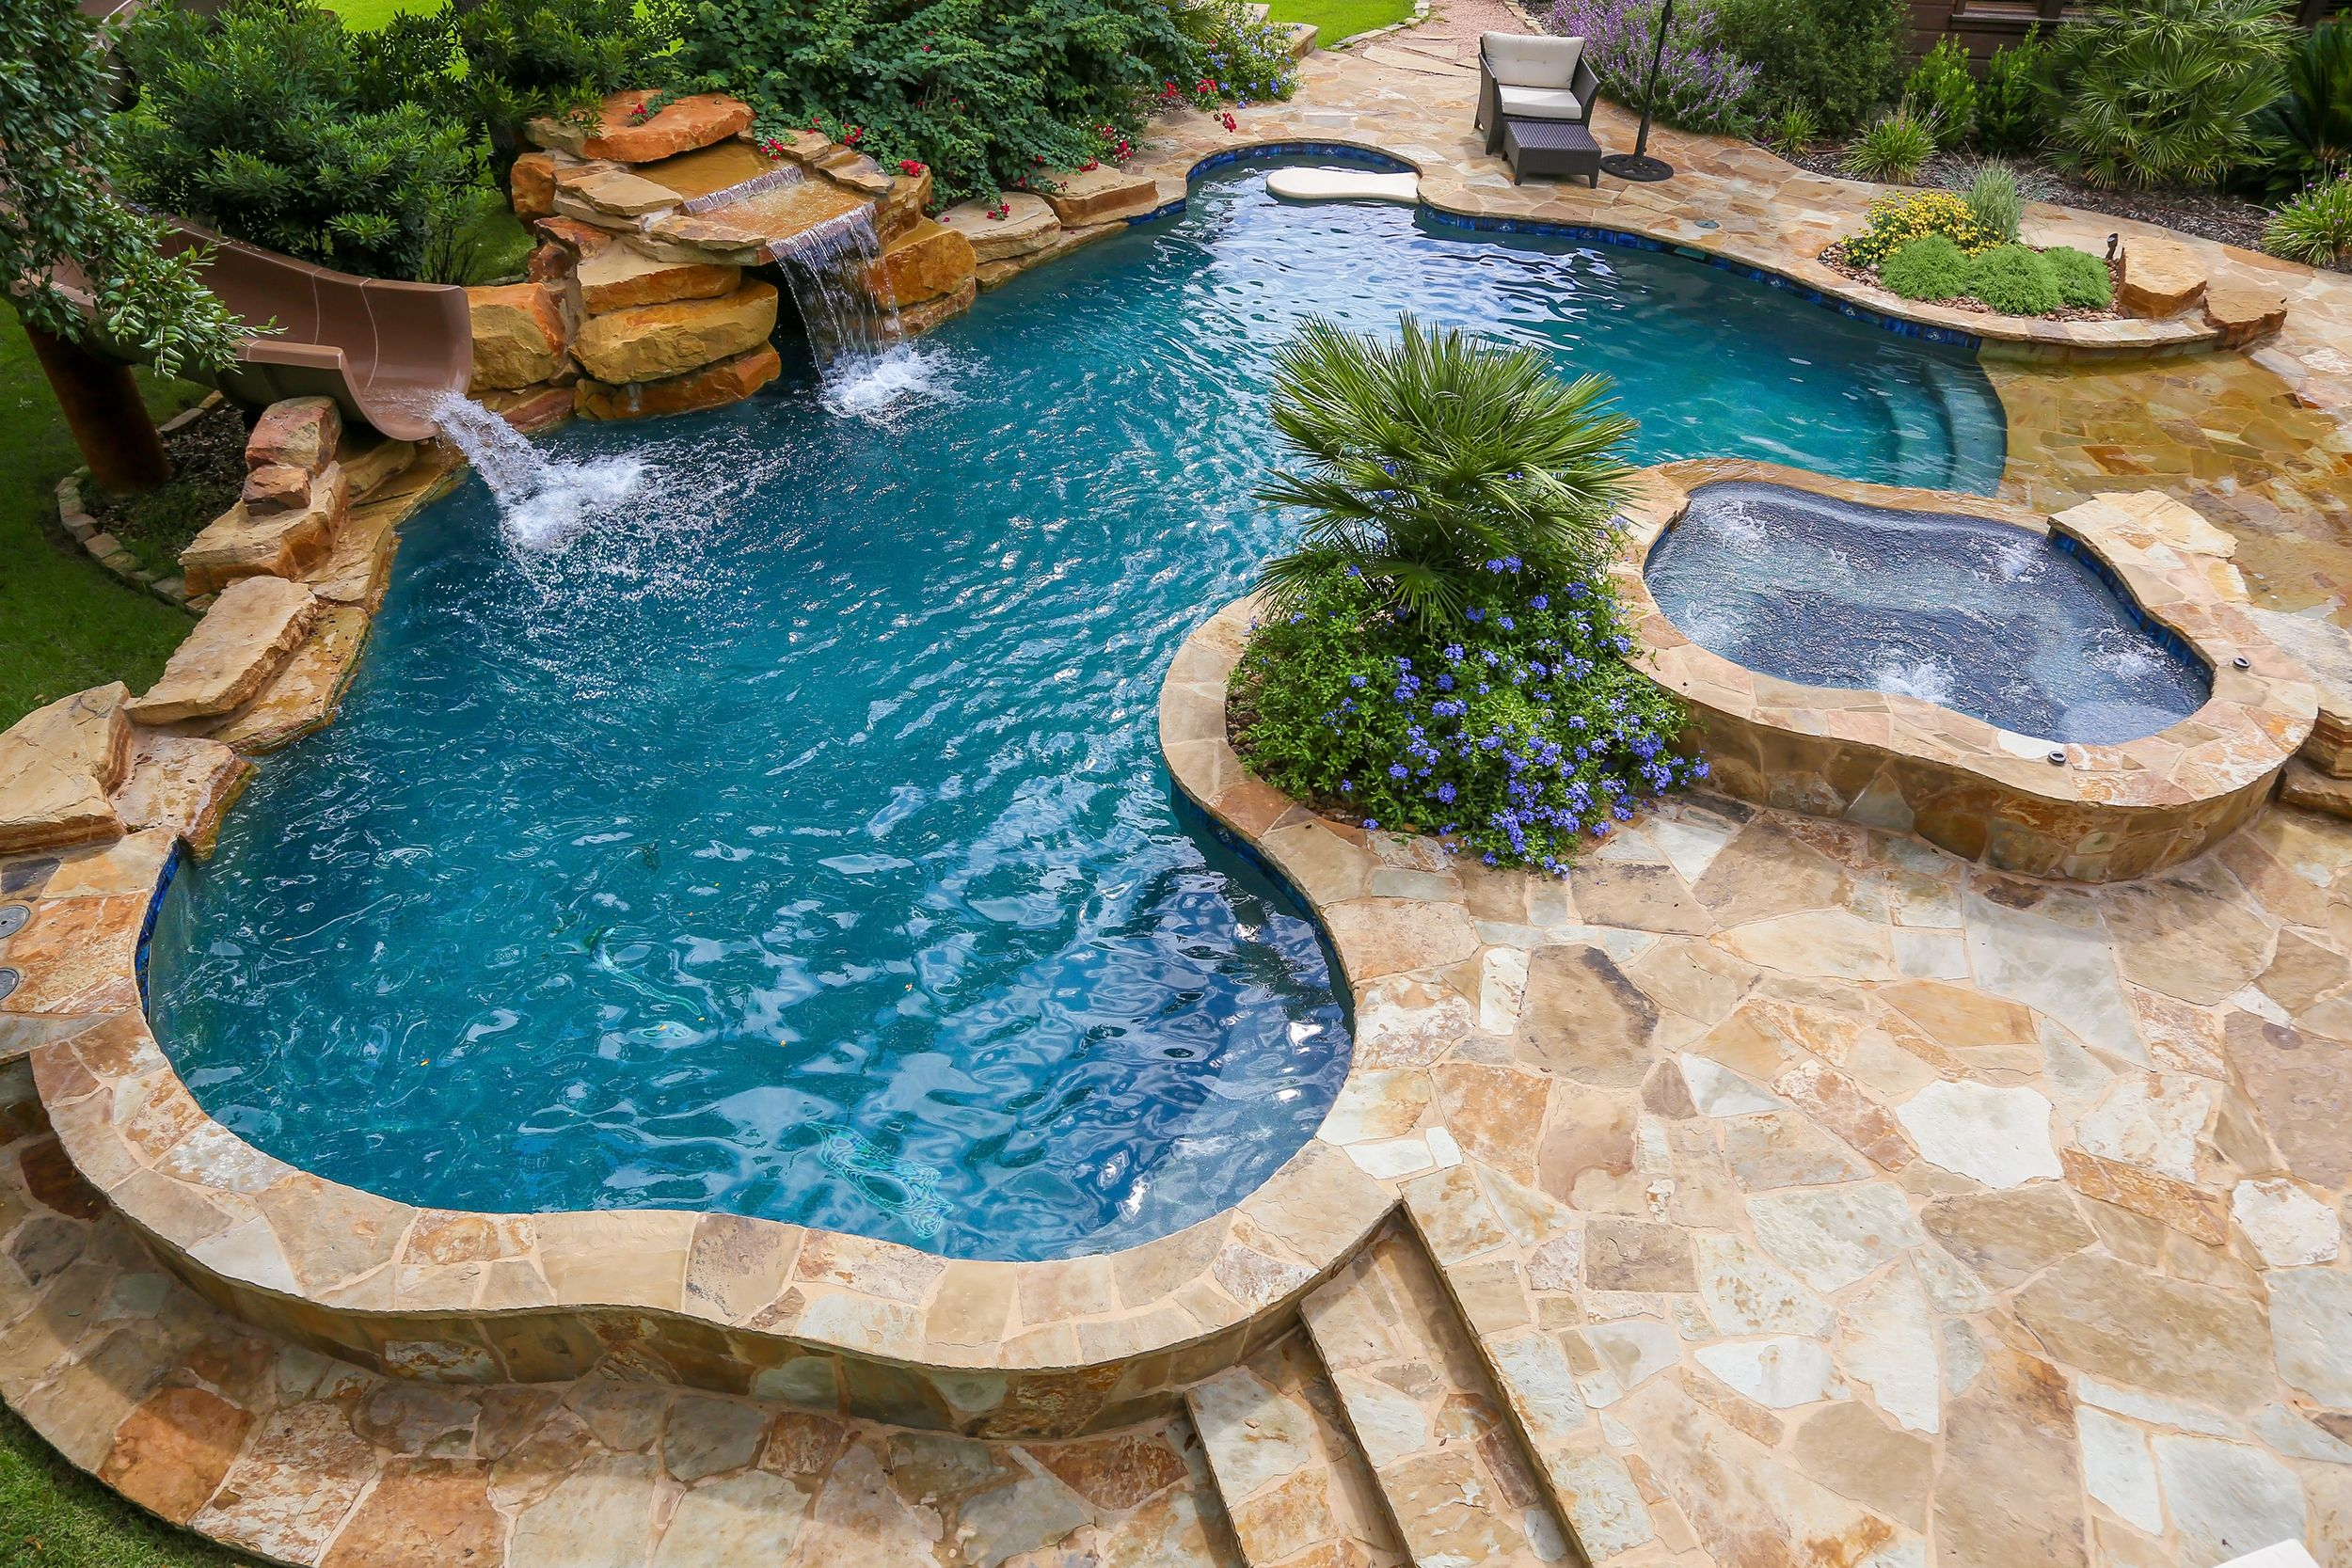 Modern Pool Designs With Slide beach entry swimming pool with a slide and waterfall | backyard